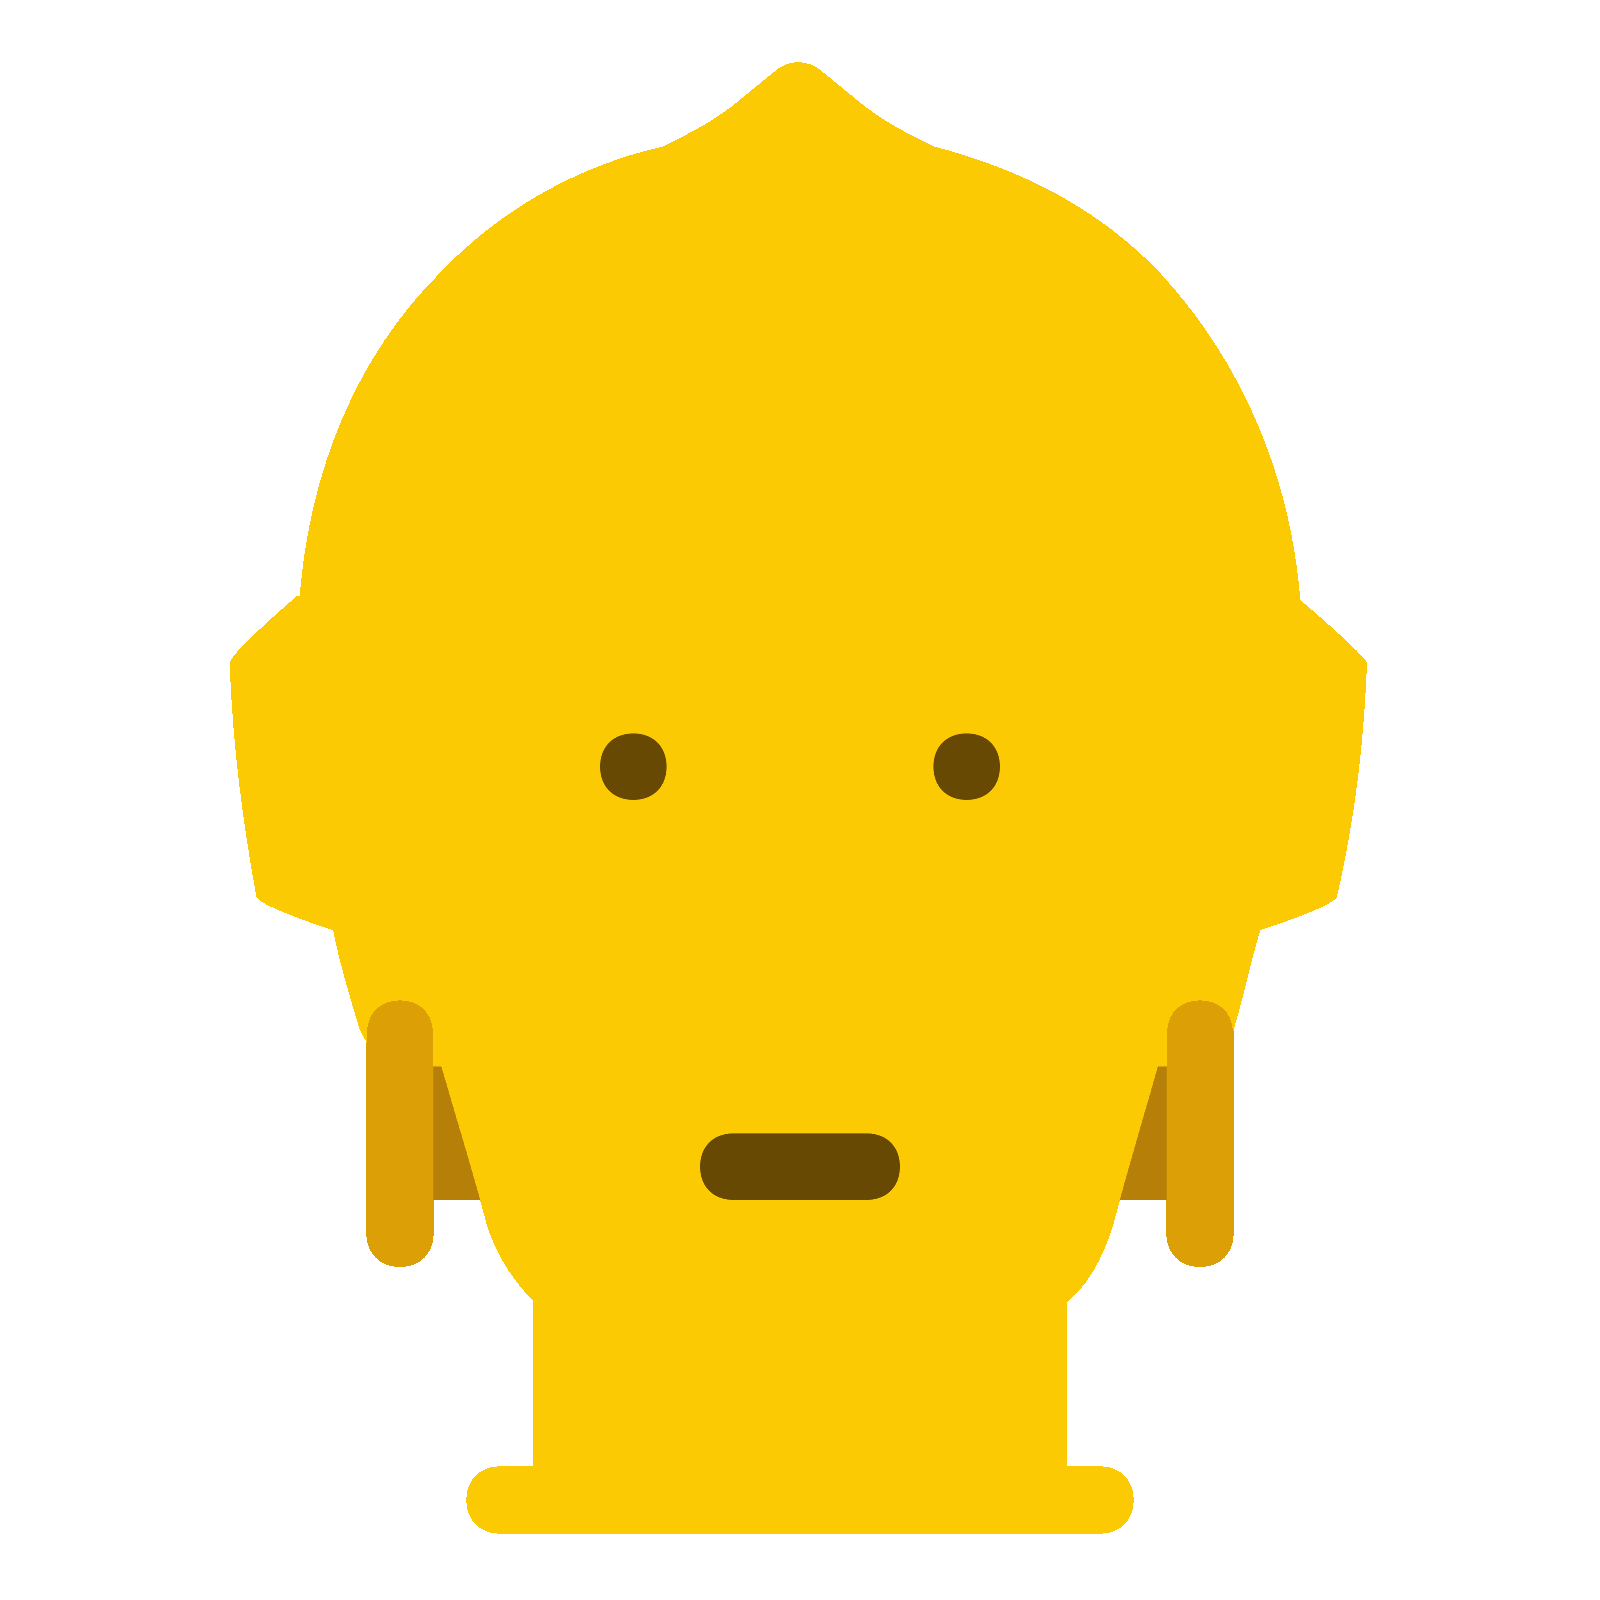 C3po vector 3cpo. C po icono descarga